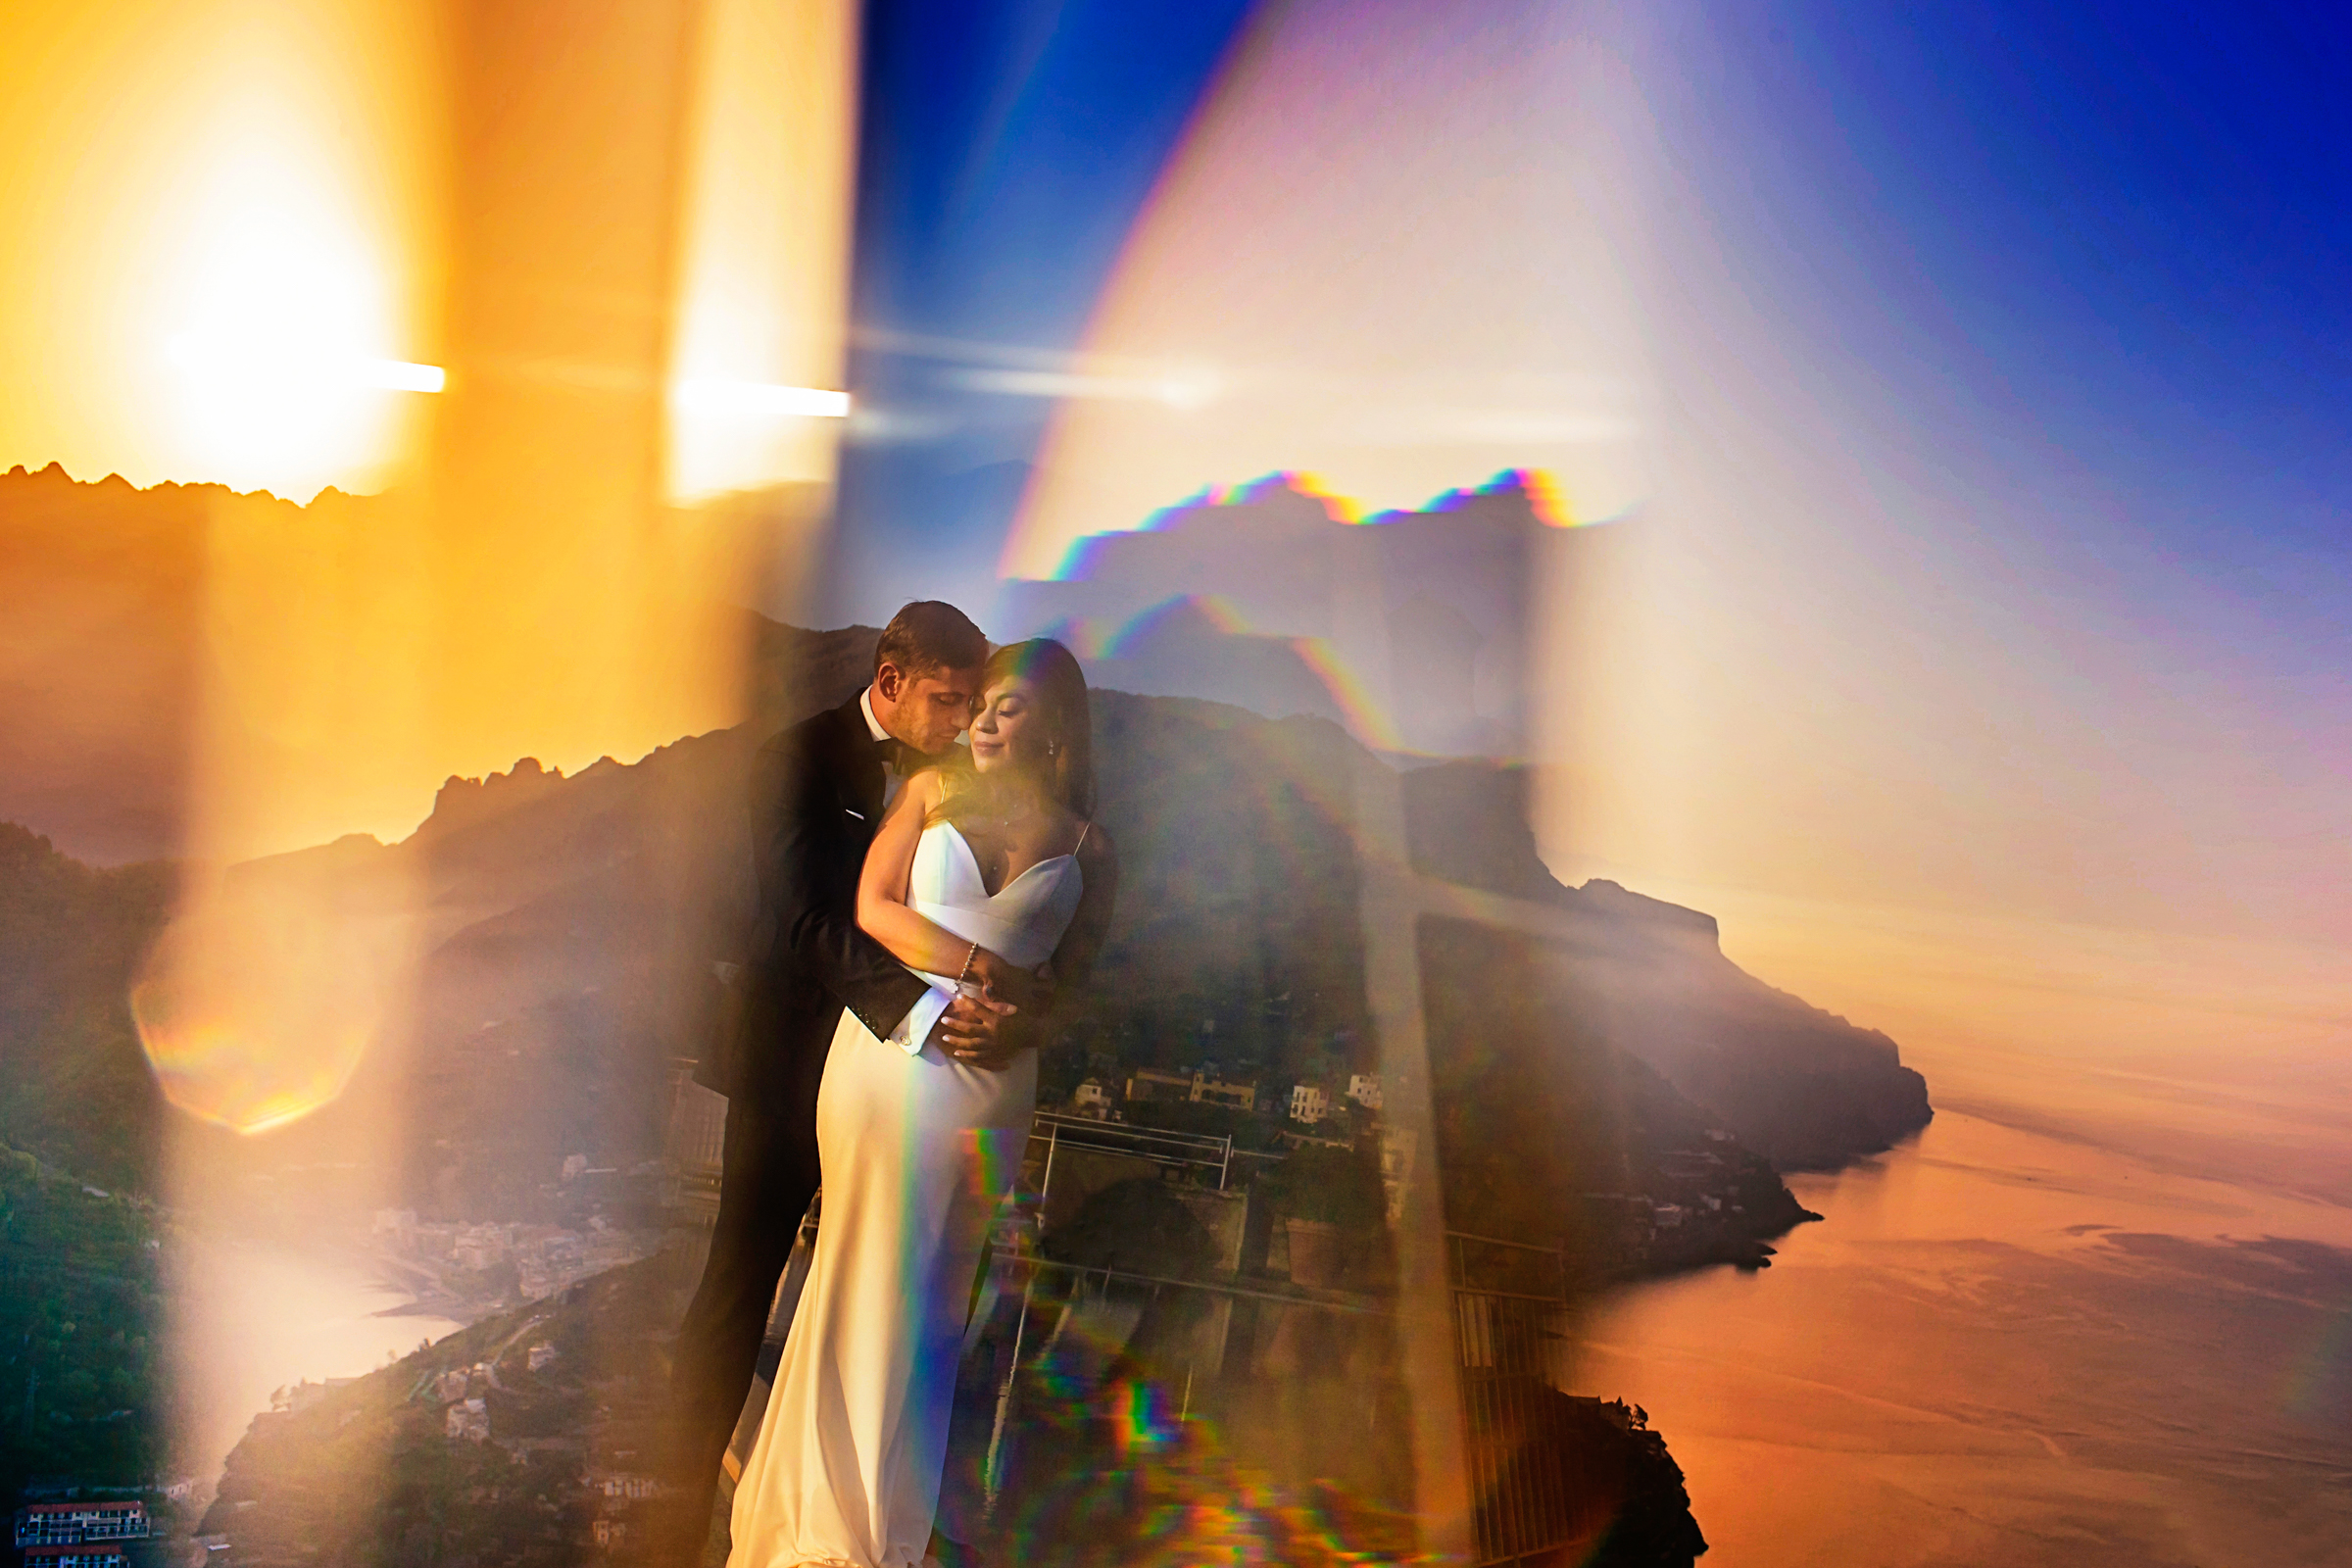 Portrait of bride and groom with interesting light artifacts - photo by Chrisman Studios